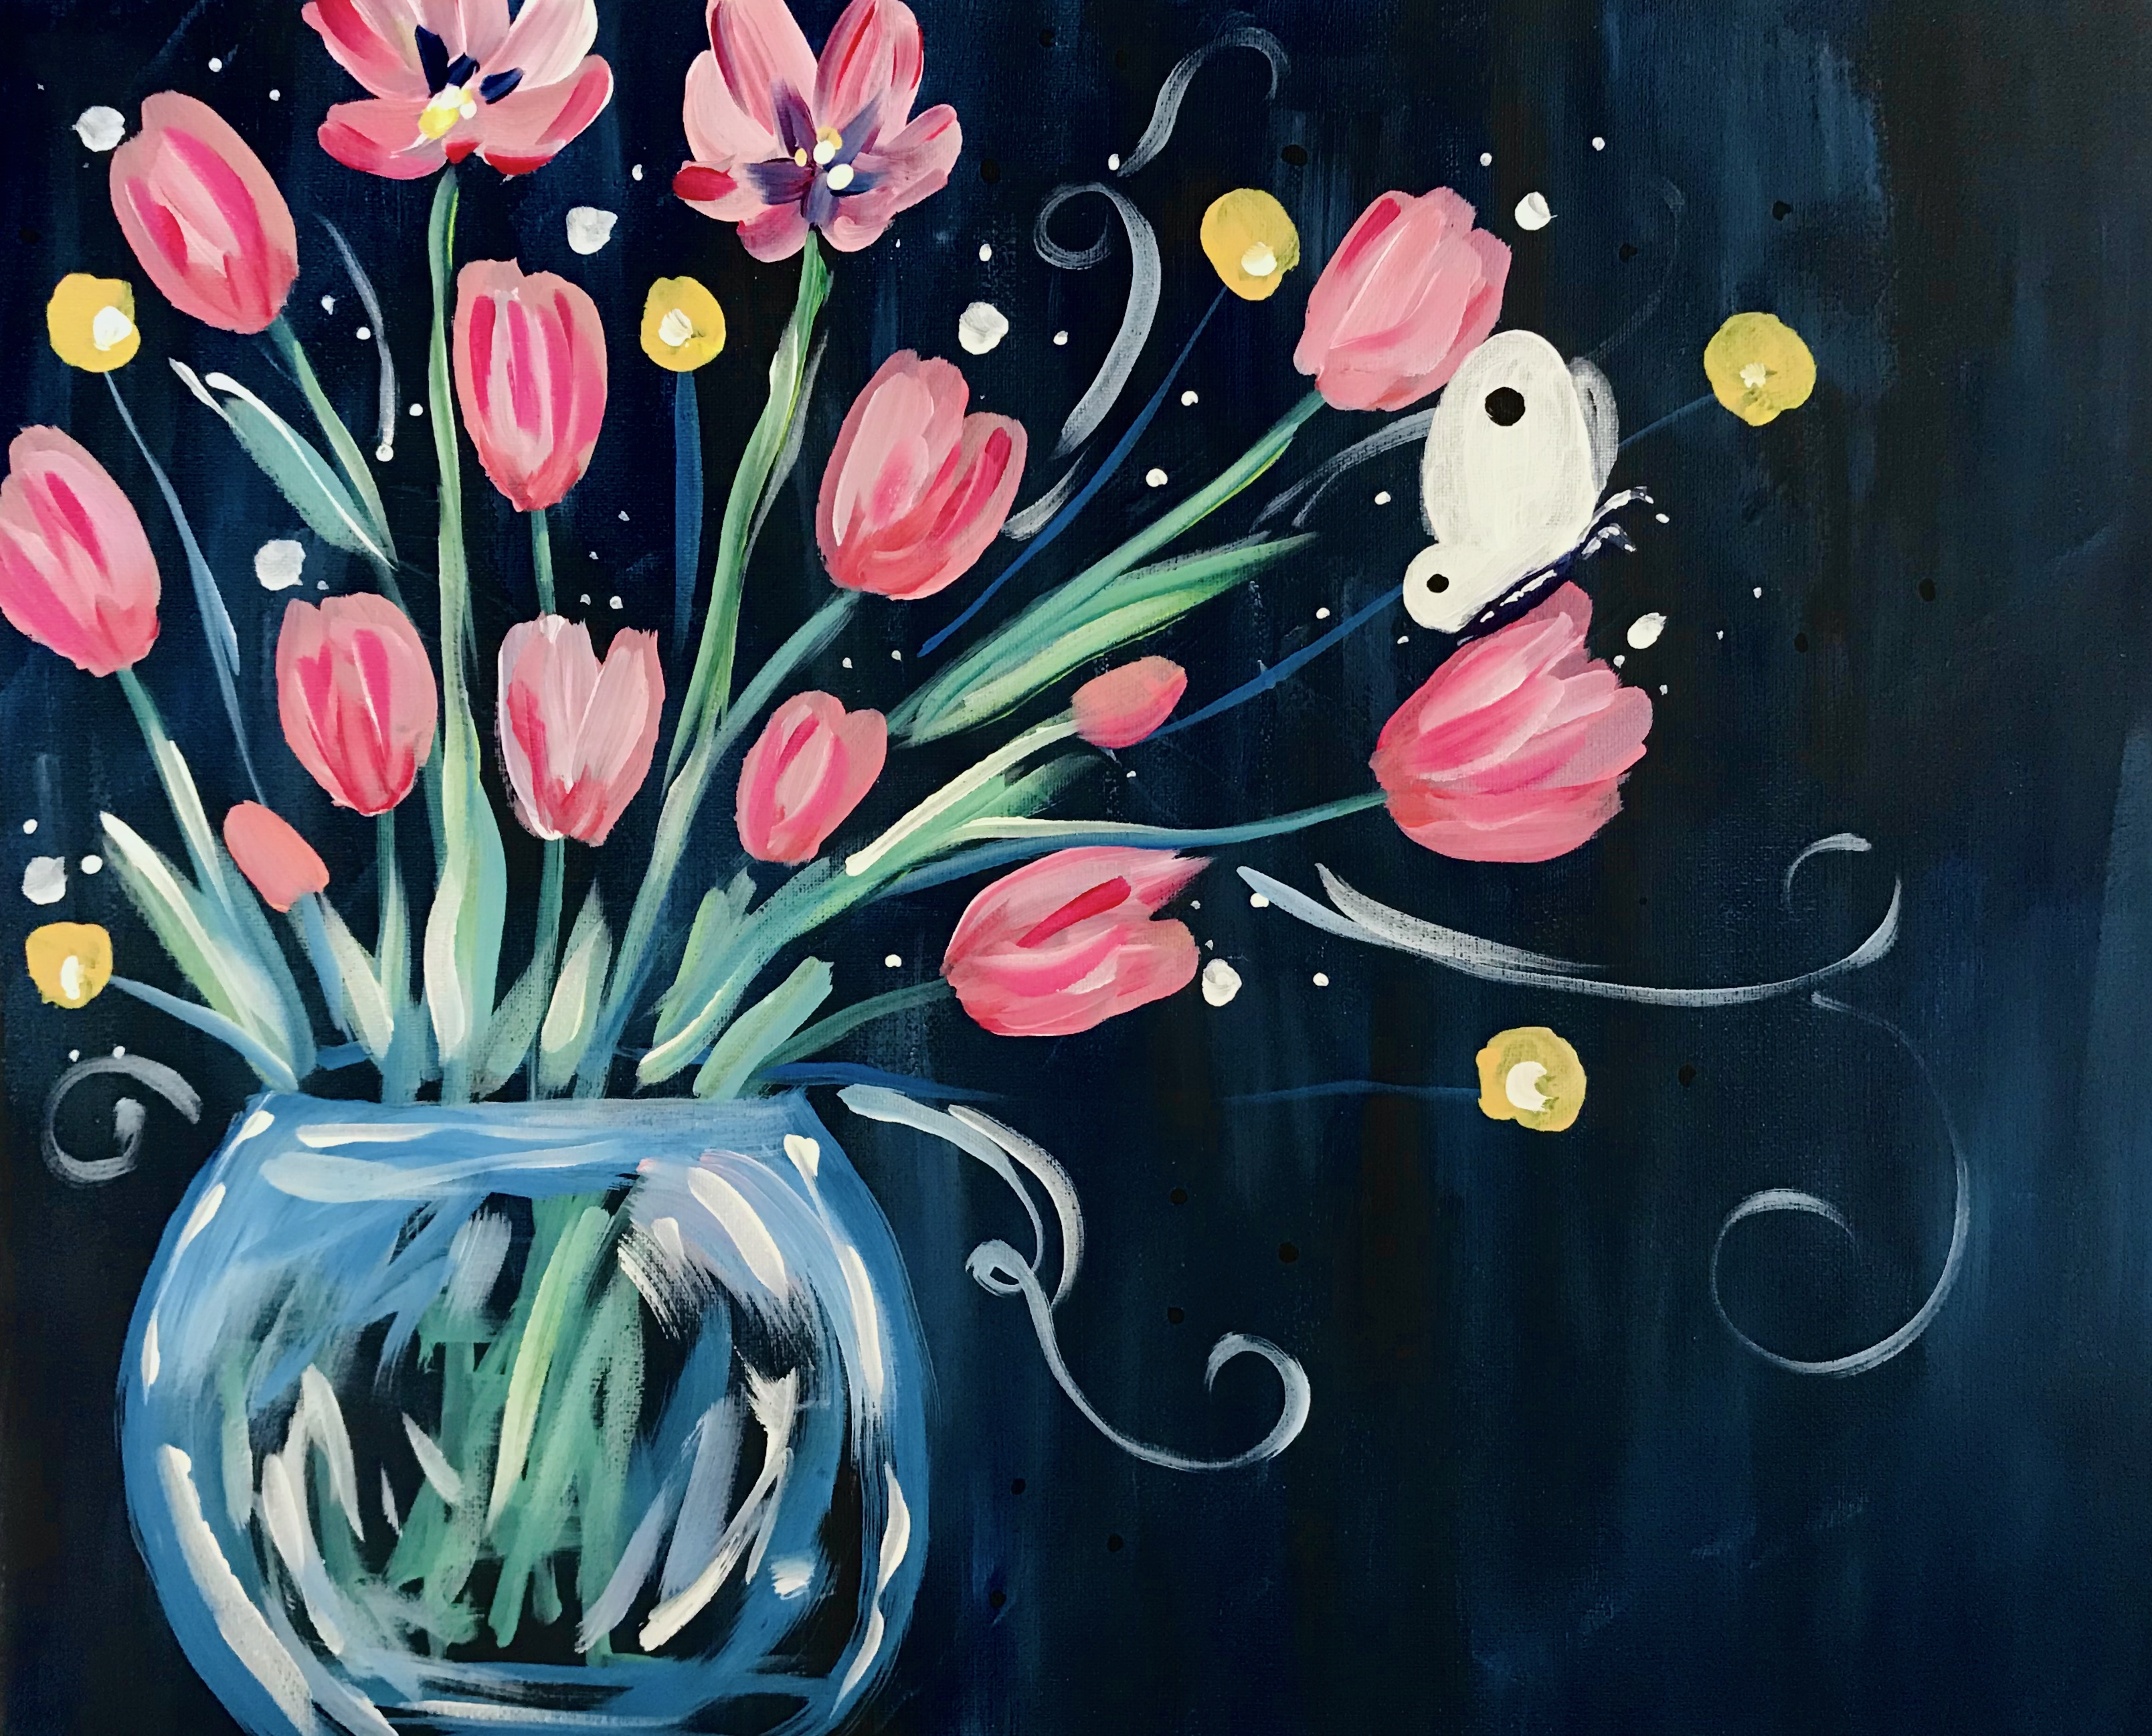 A Tulip Bowl Butterfly experience project by Yaymaker